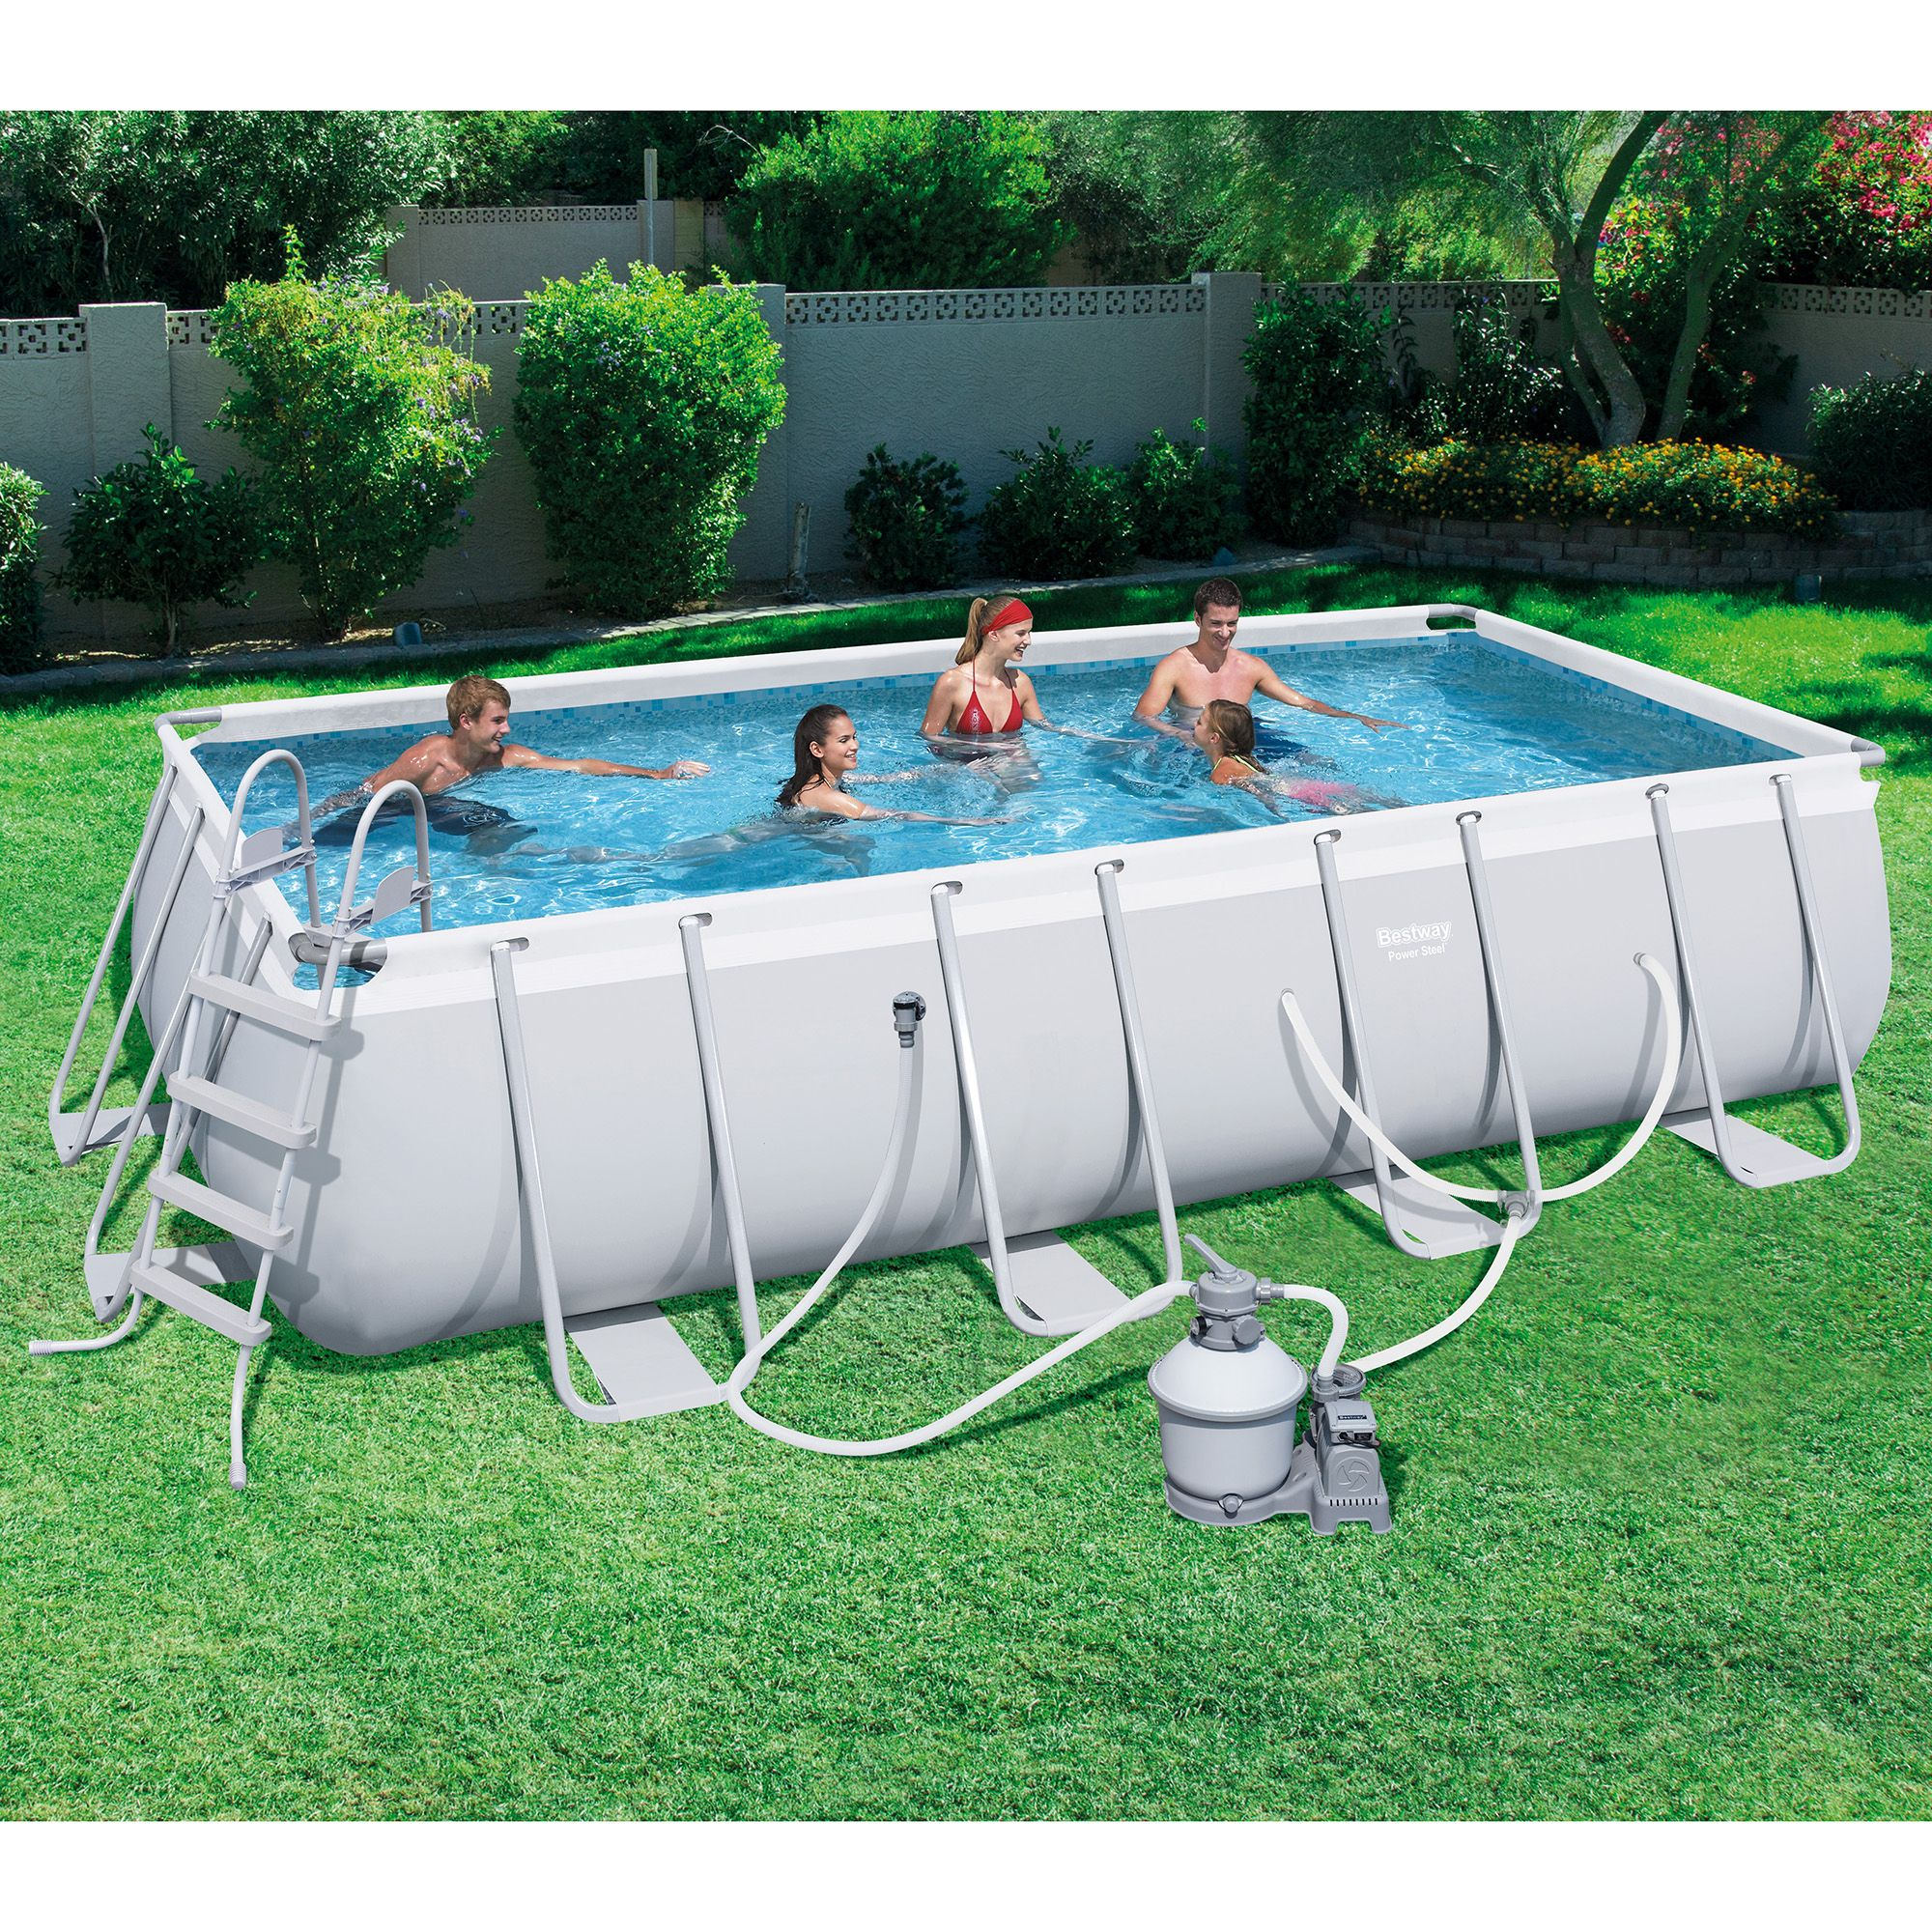 Bestway 18ft X 9ft X 48in Rectangular Frame Above Ground Pool With